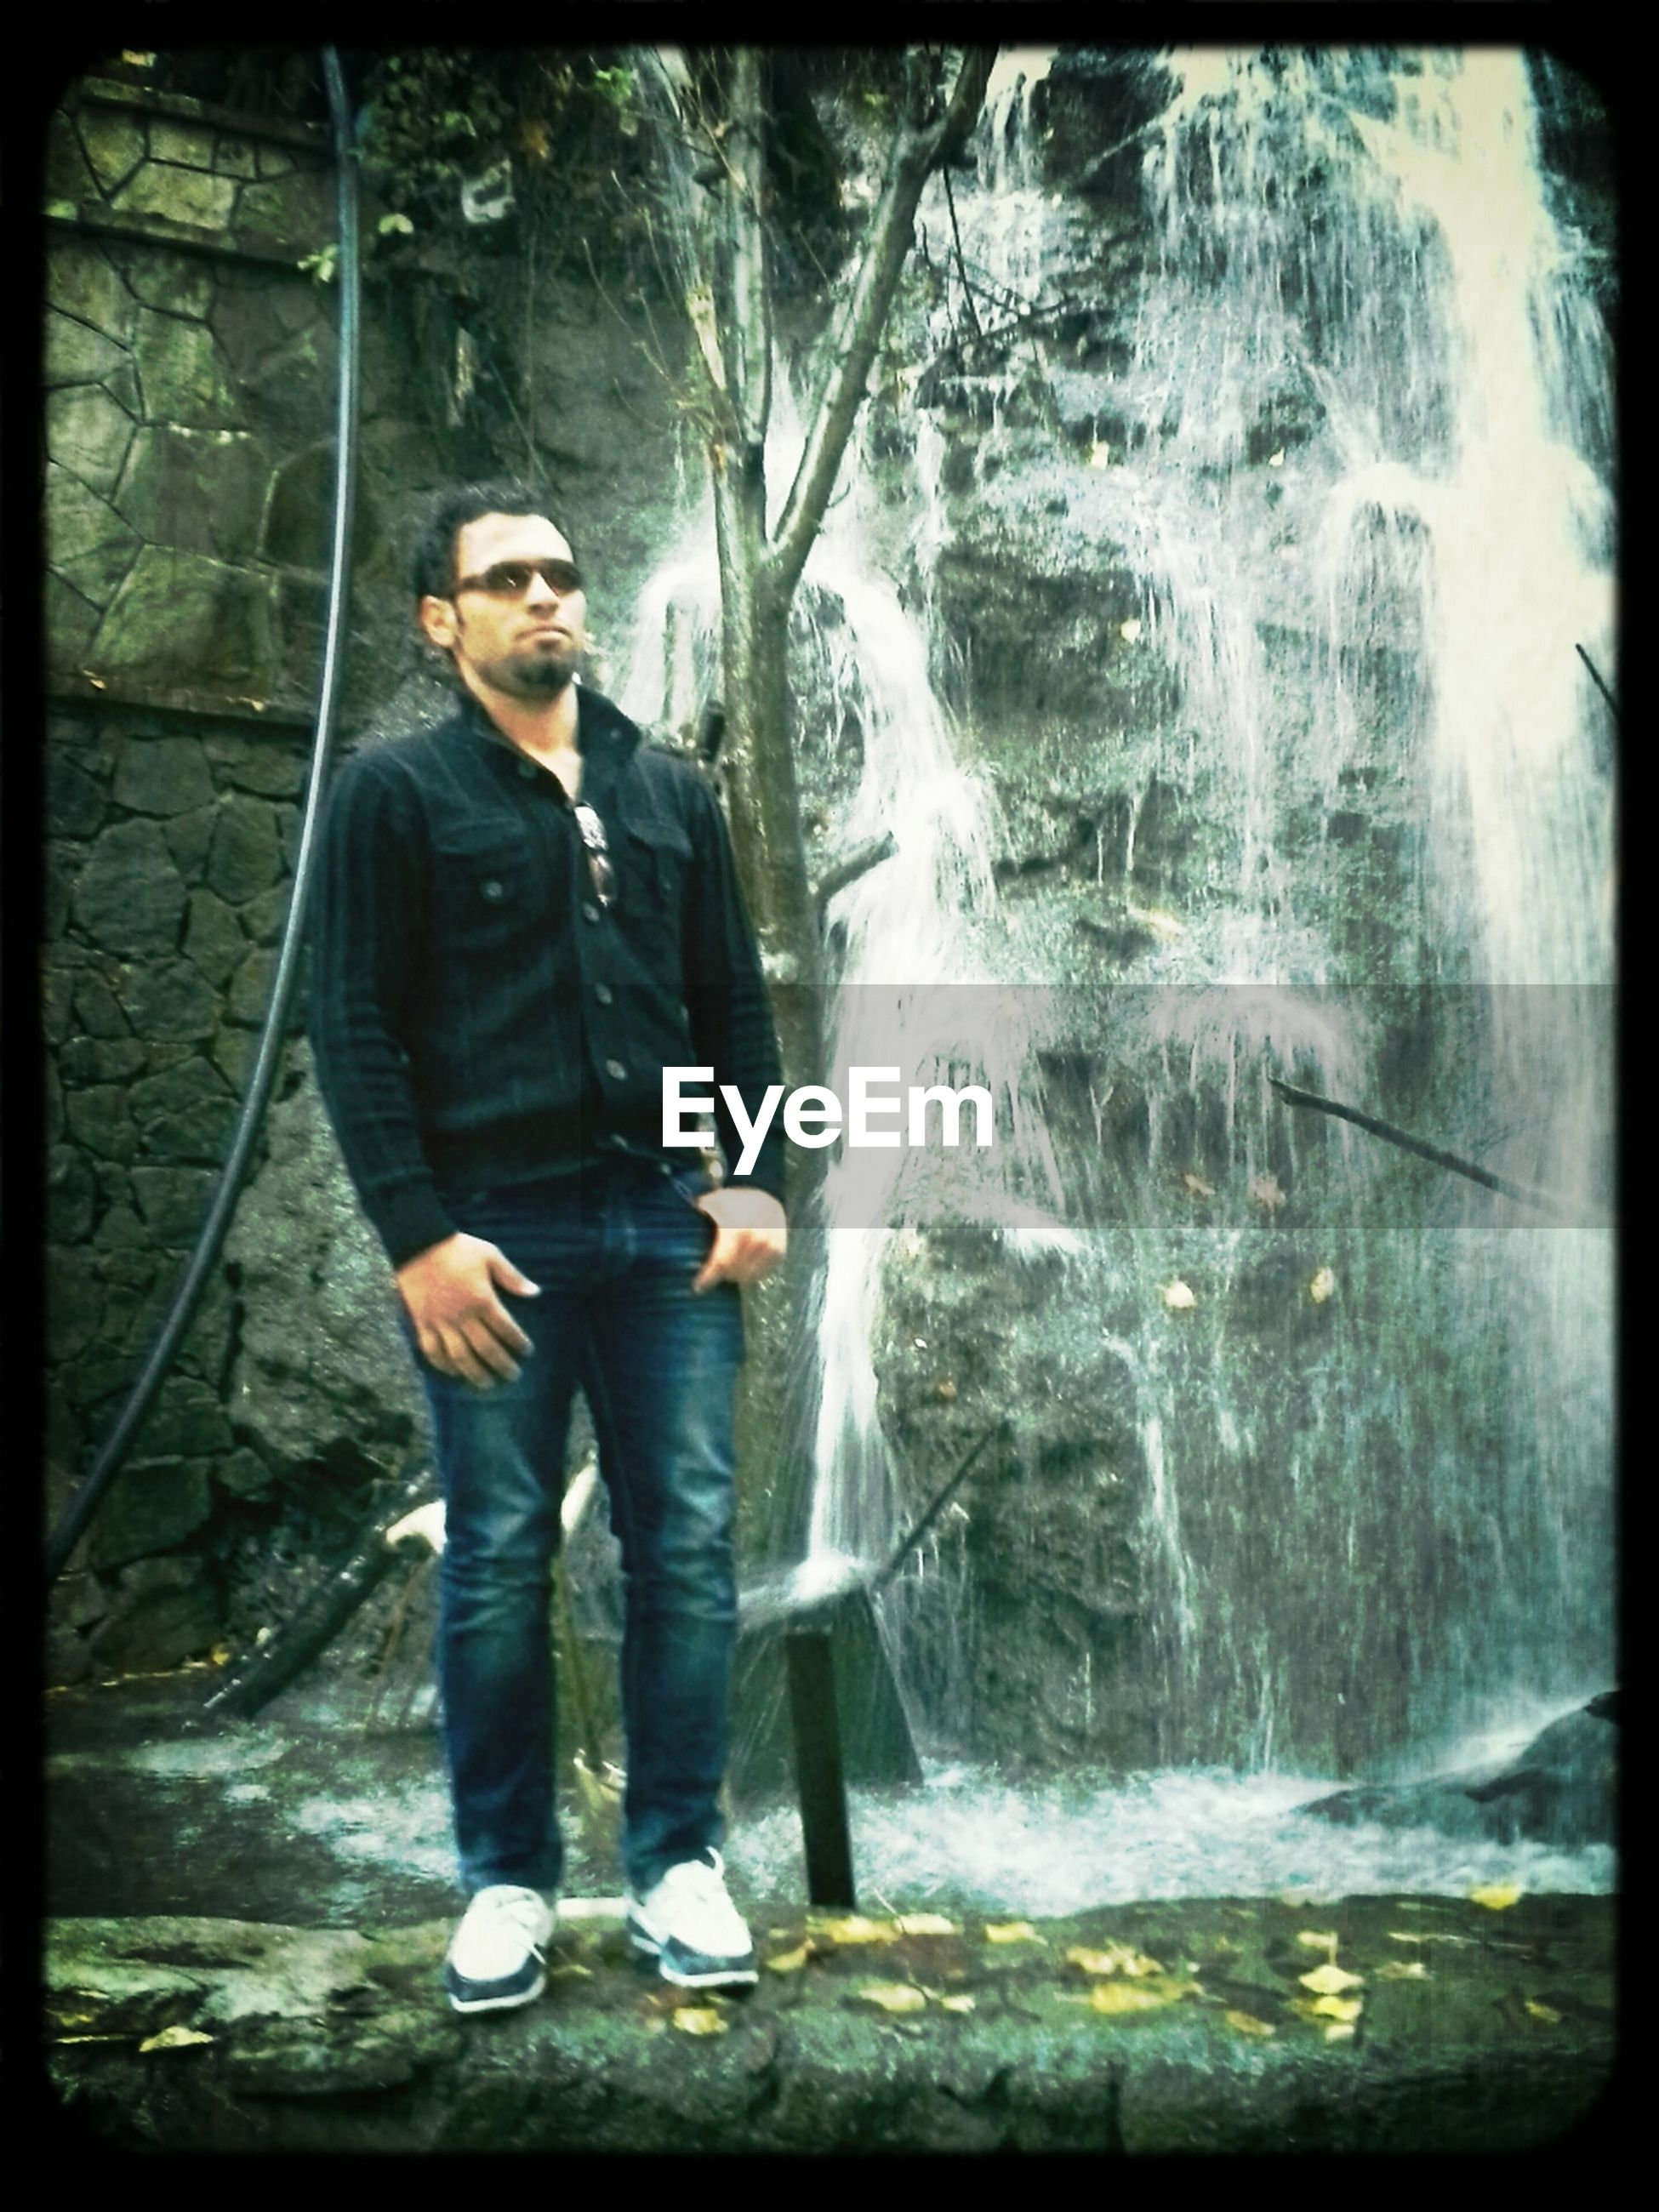 lifestyles, transfer print, leisure activity, standing, water, full length, casual clothing, young adult, auto post production filter, person, looking at camera, front view, portrait, young men, three quarter length, reflection, day